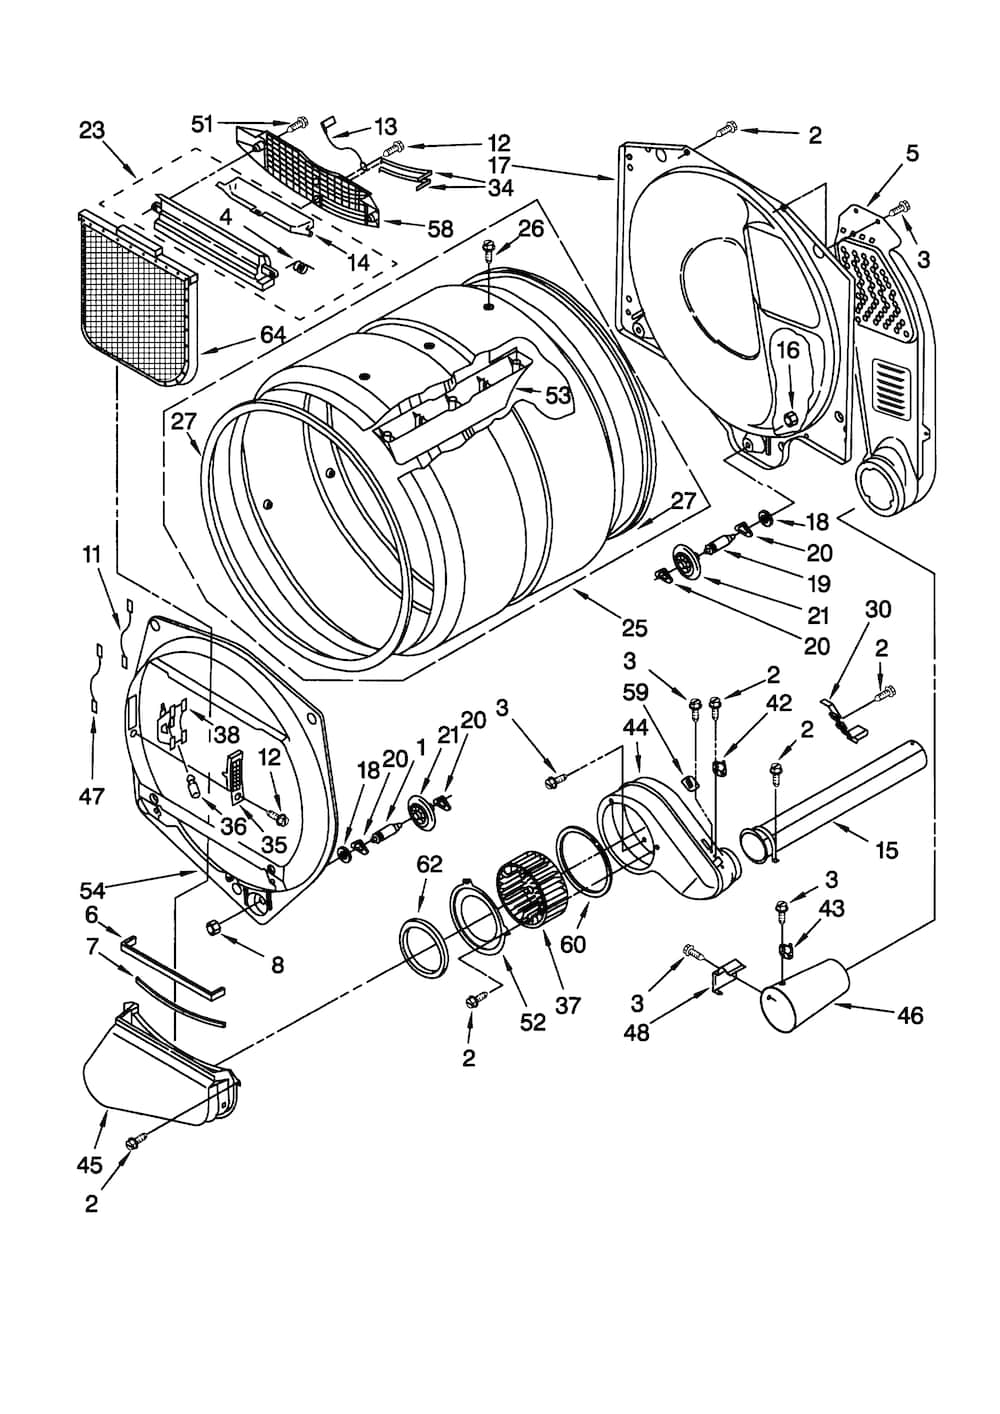 Kenmore Gas Dryer Parts | Model 11078942892 | Sears Partsdirect with regard to Kenmore 80 Series Dryer Parts Diagram